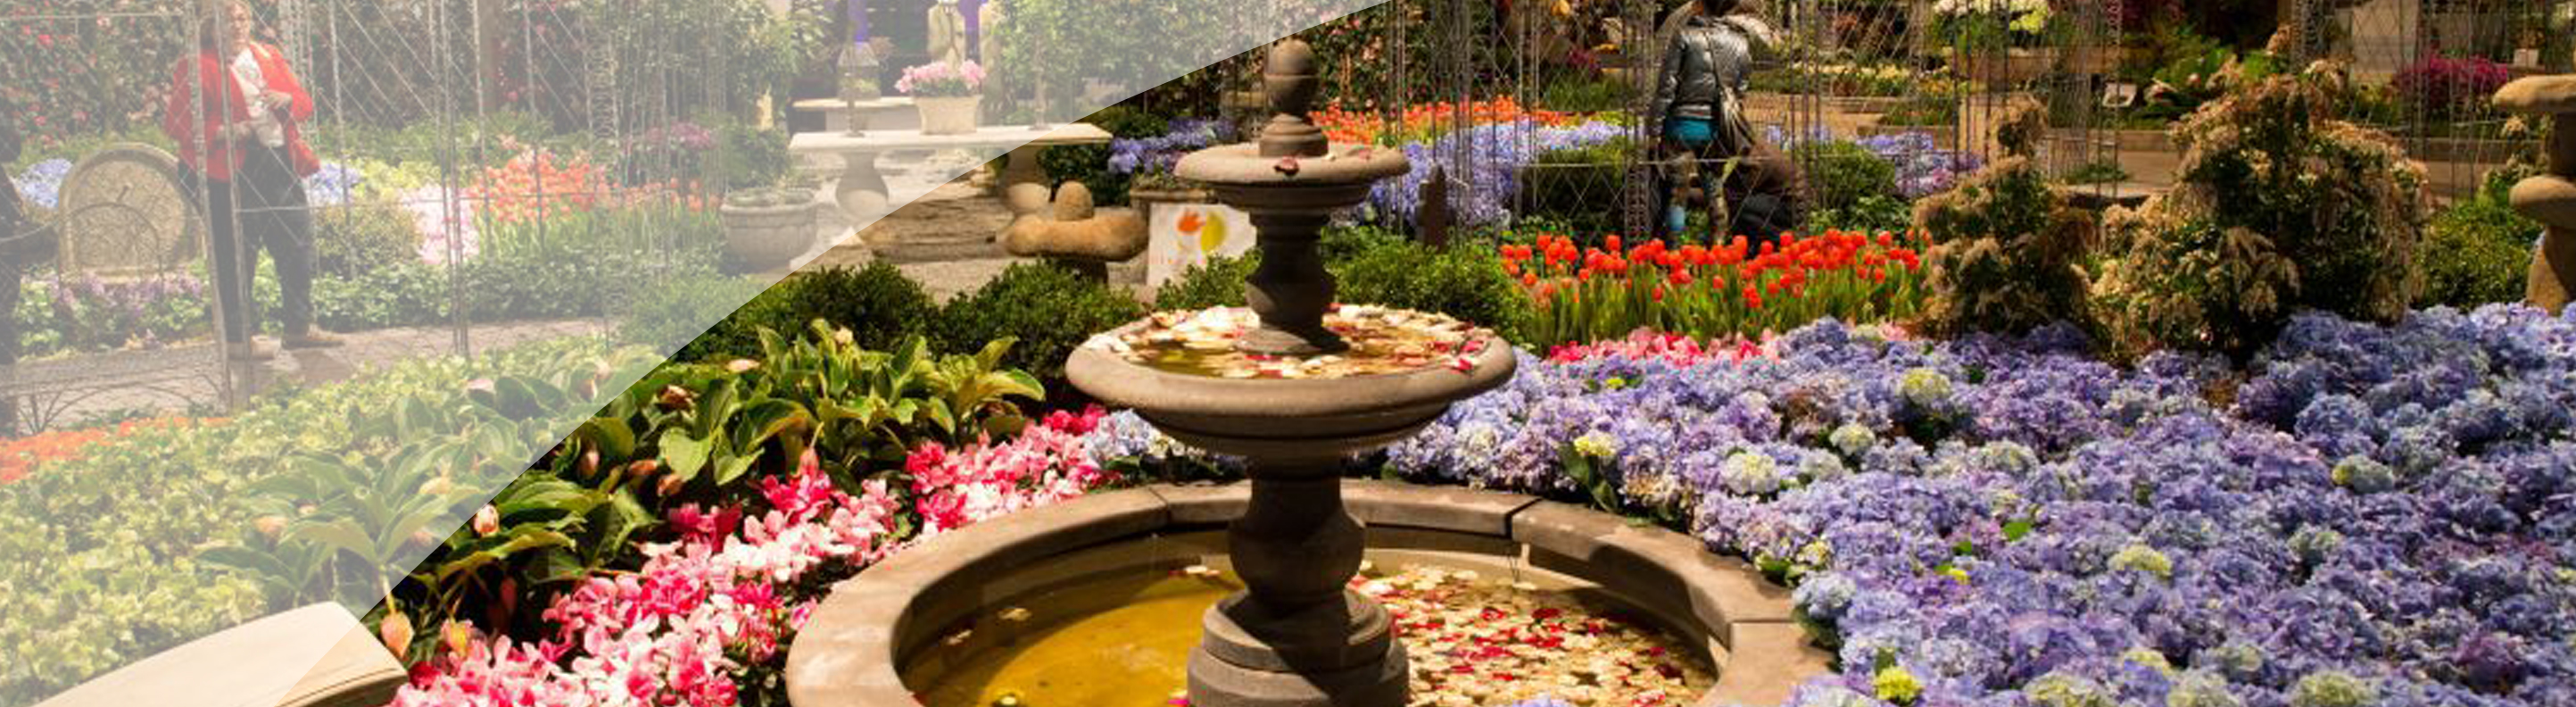 Chicago Flower & Garden Show - MidAmerica National Bank